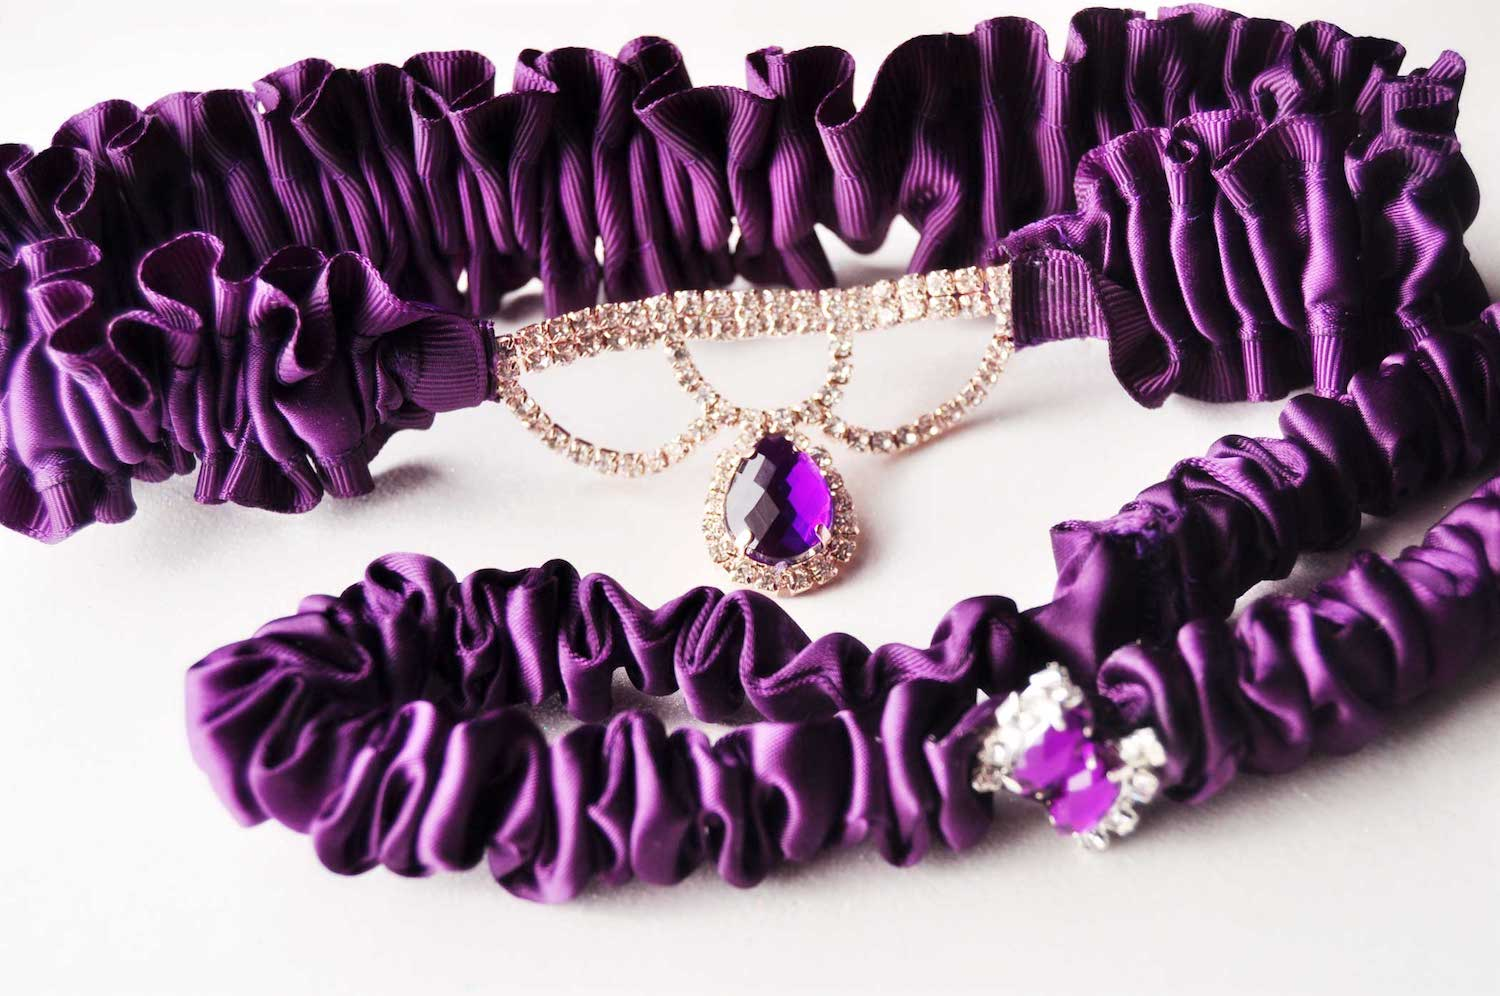 Handmade Purple Wedding Garter with a Rose Gold and Rhinestone teardrop connector - details for purple weddings - handmade purple bridal accessories from Knotted and Bent - see more on www.brendasweddingblog.com